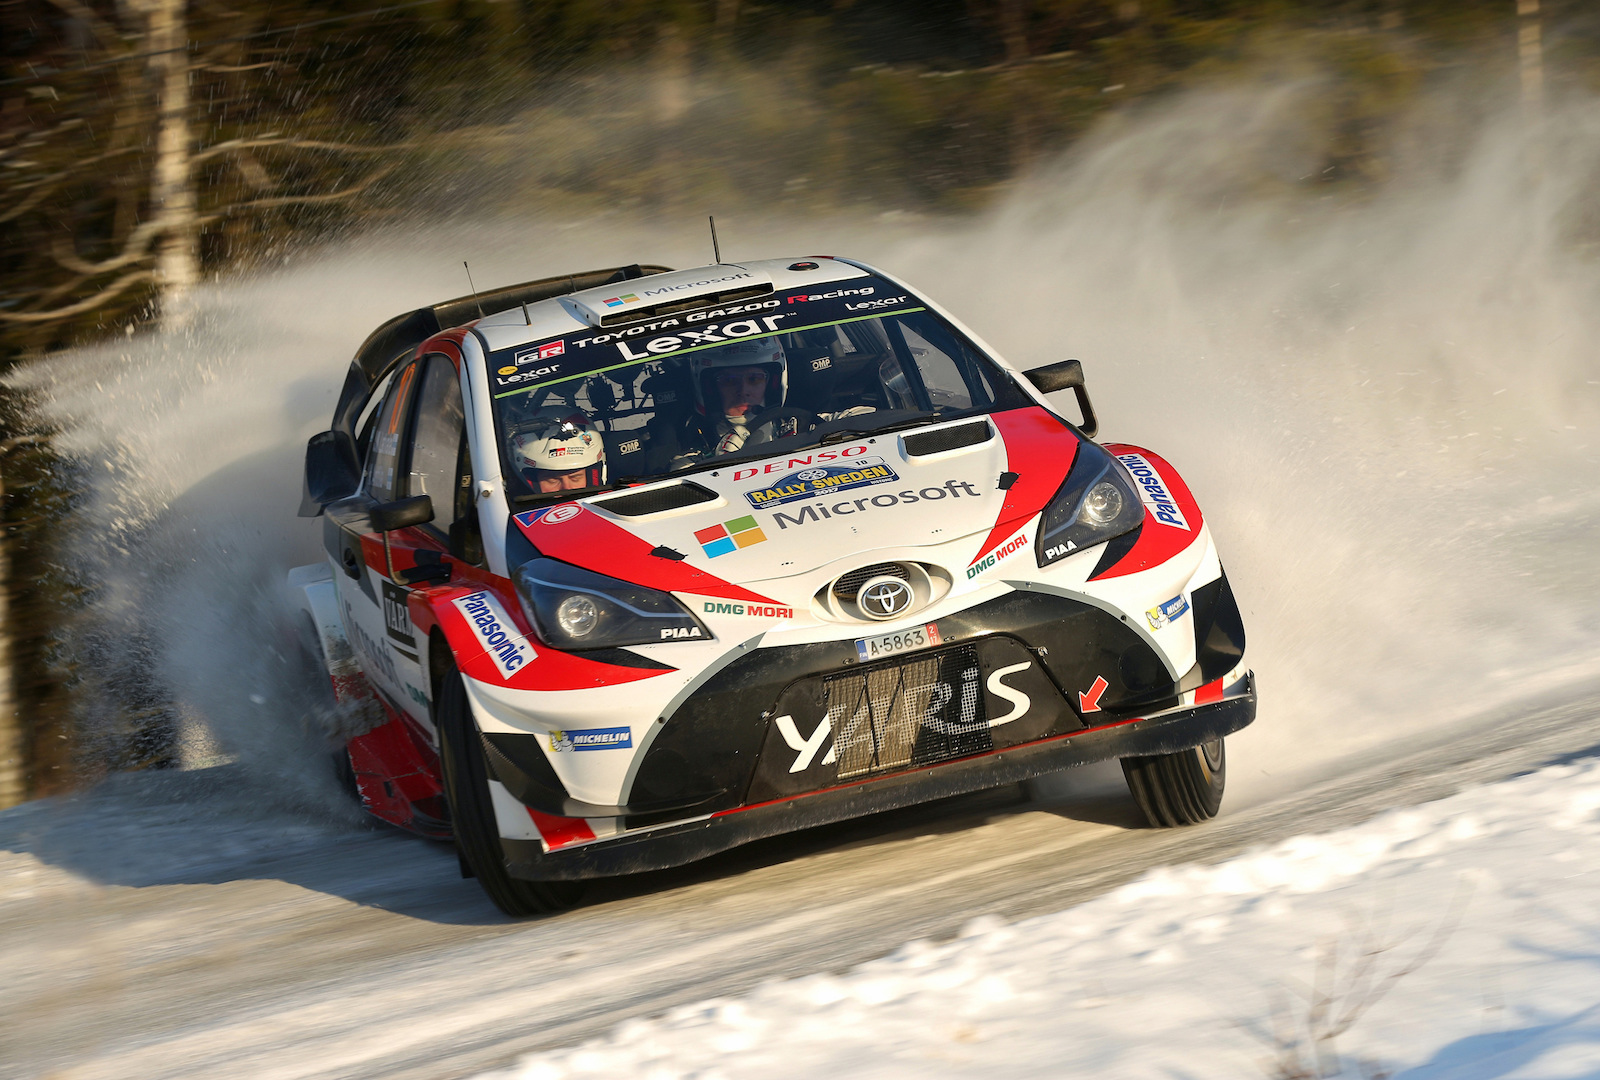 Toyota Wins 2017 Rally Sweden First Wrc Win Since 1999